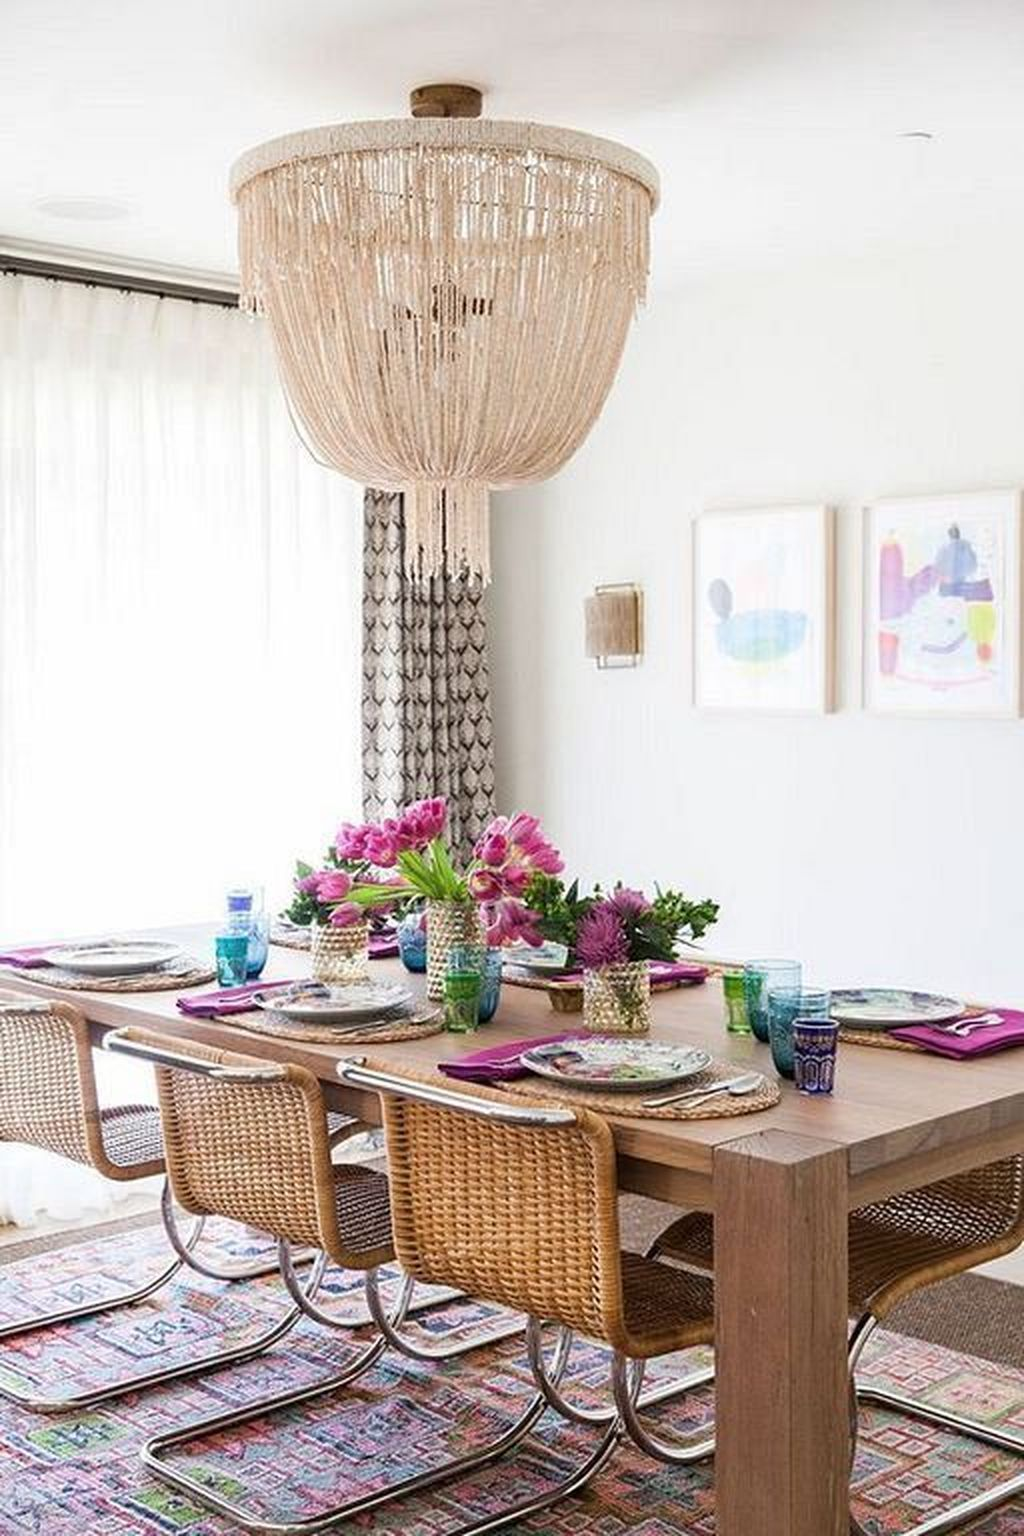 Stunning Romantic Dining Room Decor Ideas Best For Valentines Day 19